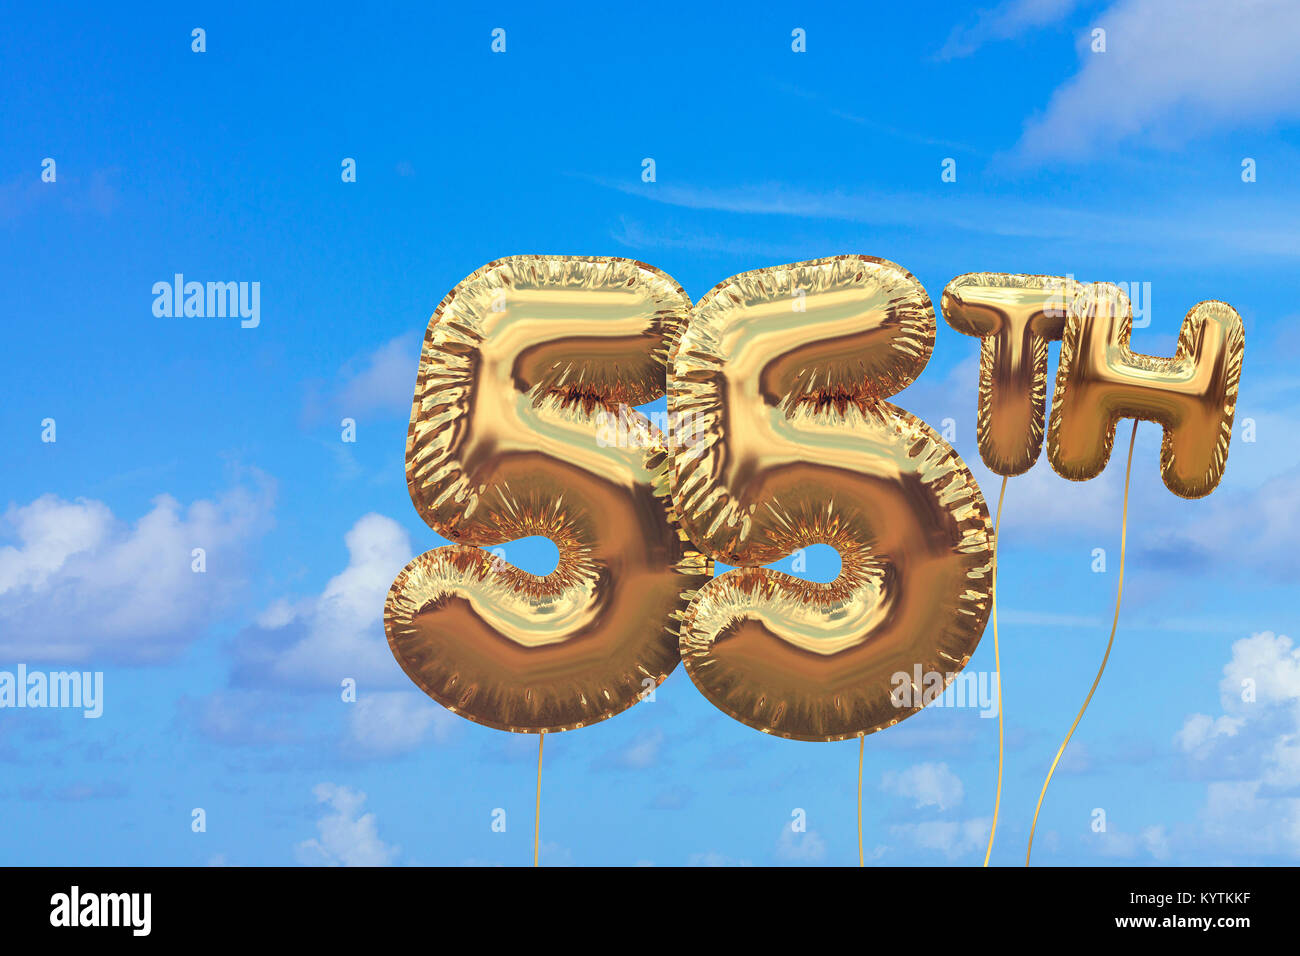 Gold Number 55 Foil Birthday Balloon Against A Bright Blue Summer